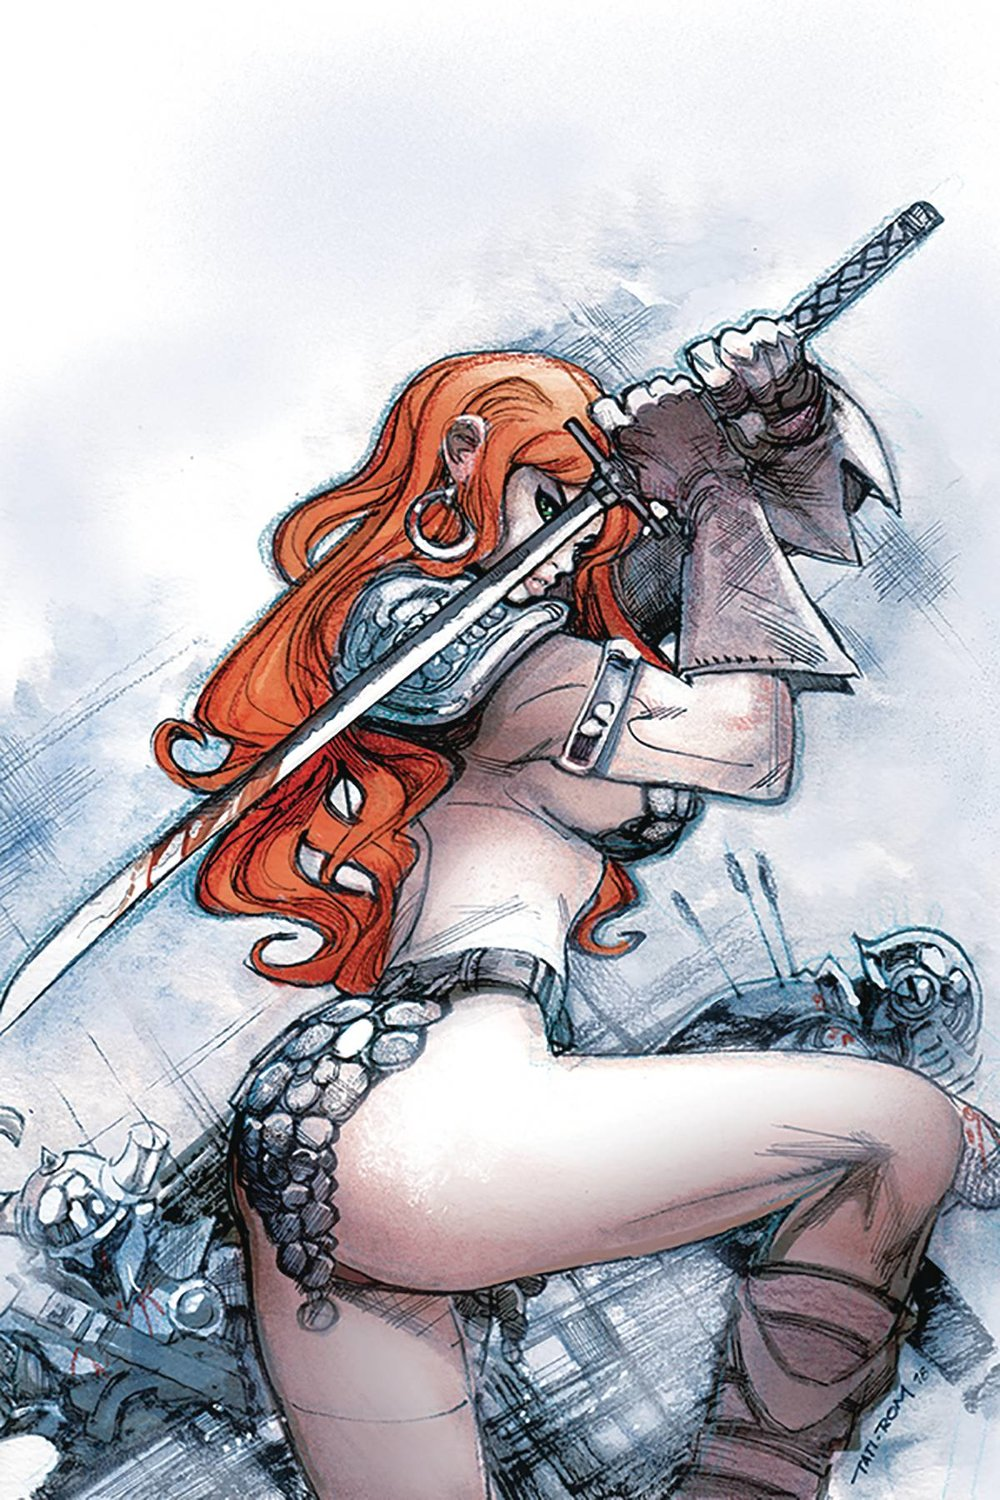 RED SONJA 24 20 COPY MORITAT VIRGIN INCV.jpg